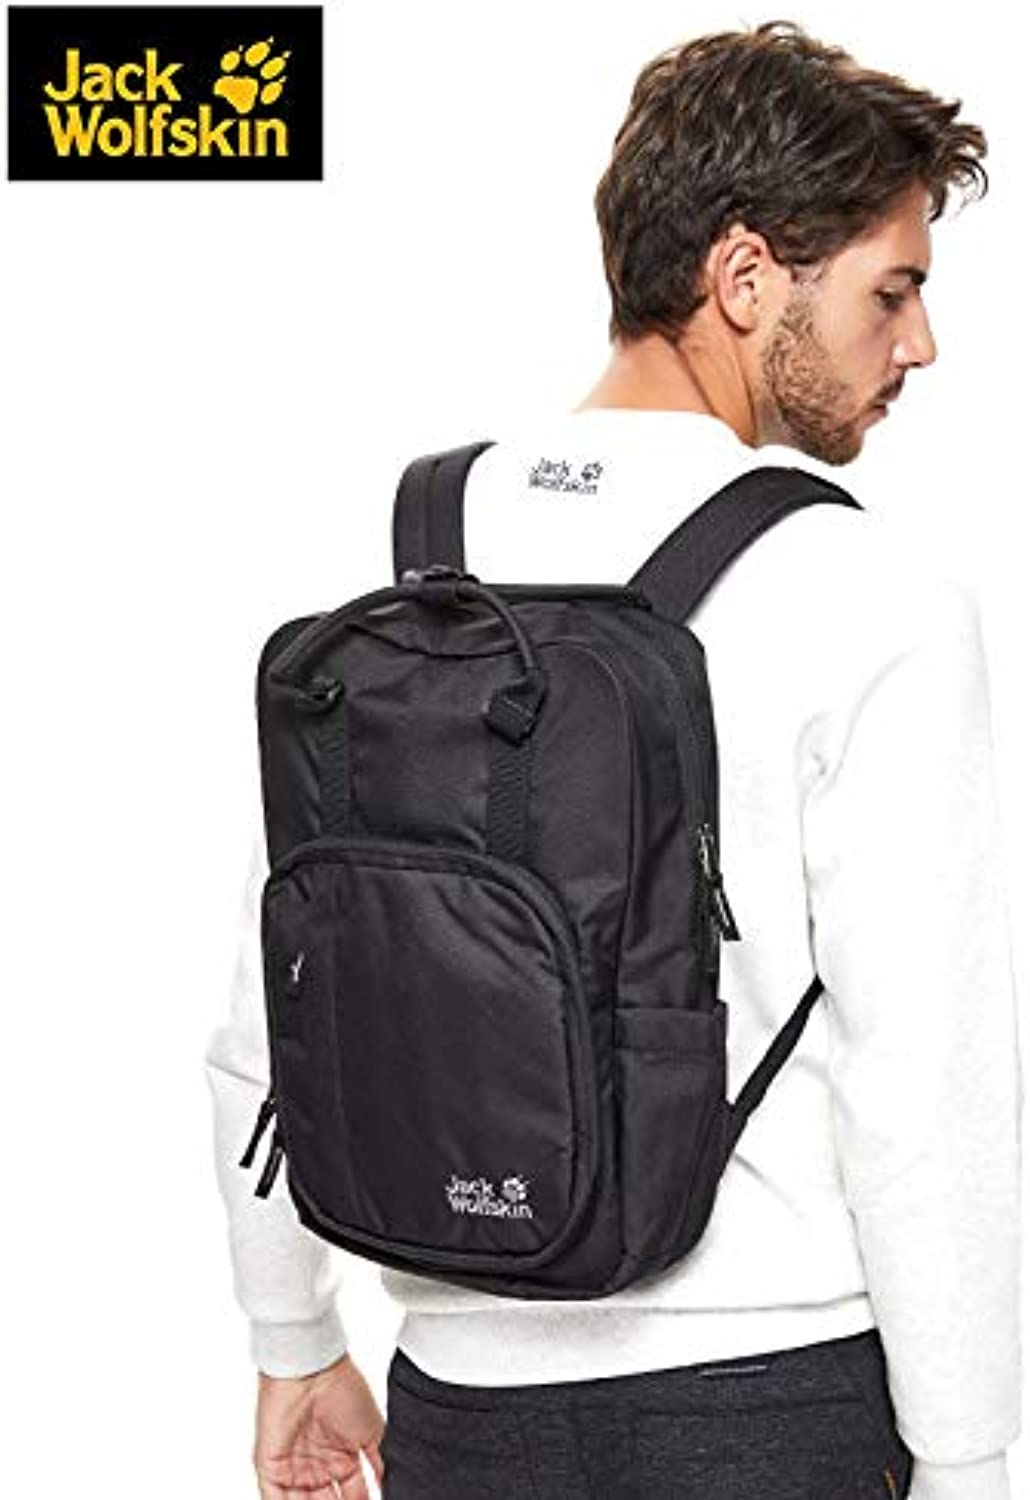 JackWolfskin Wolf Paw Outdoor Comfortable and Practical Leisure 16L Neutral Daily Backpack 2007121